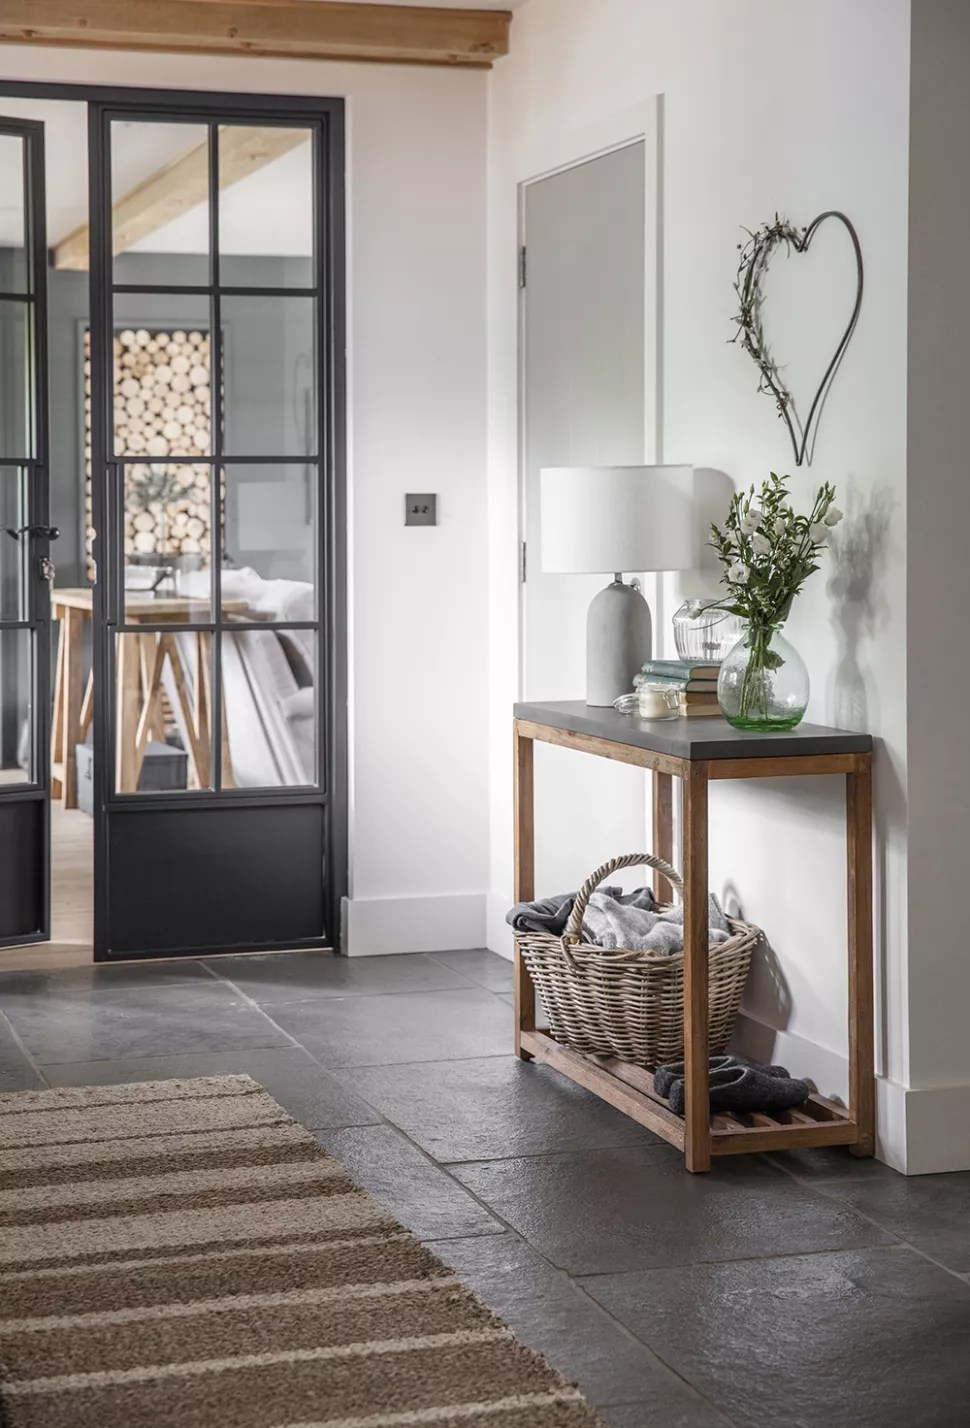 small hallway ideas with a door leading off into another room